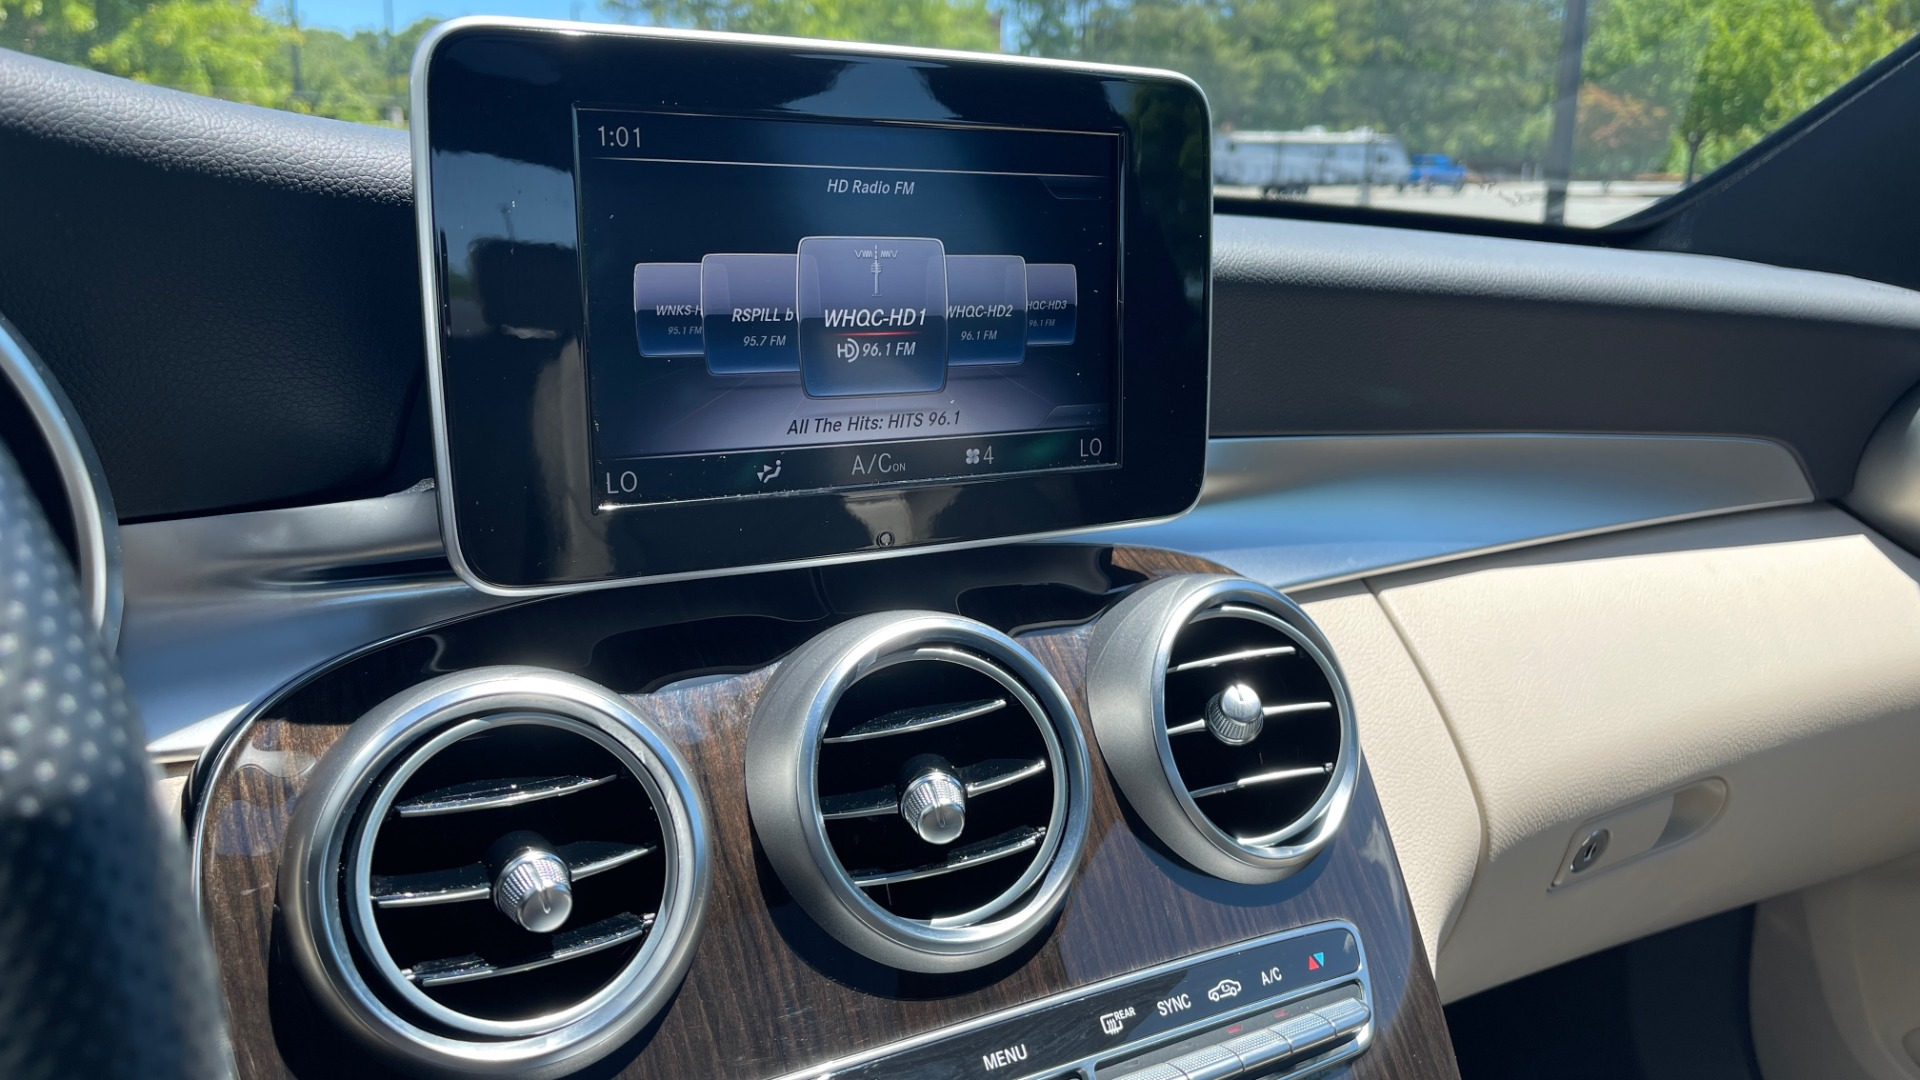 Used 2018 Mercedes-Benz C-CLASS C 300 PREMIUM / KEYLESS-GO / PANO-ROOF / BURMESTER / REARVIEW for sale $29,495 at Formula Imports in Charlotte NC 28227 40